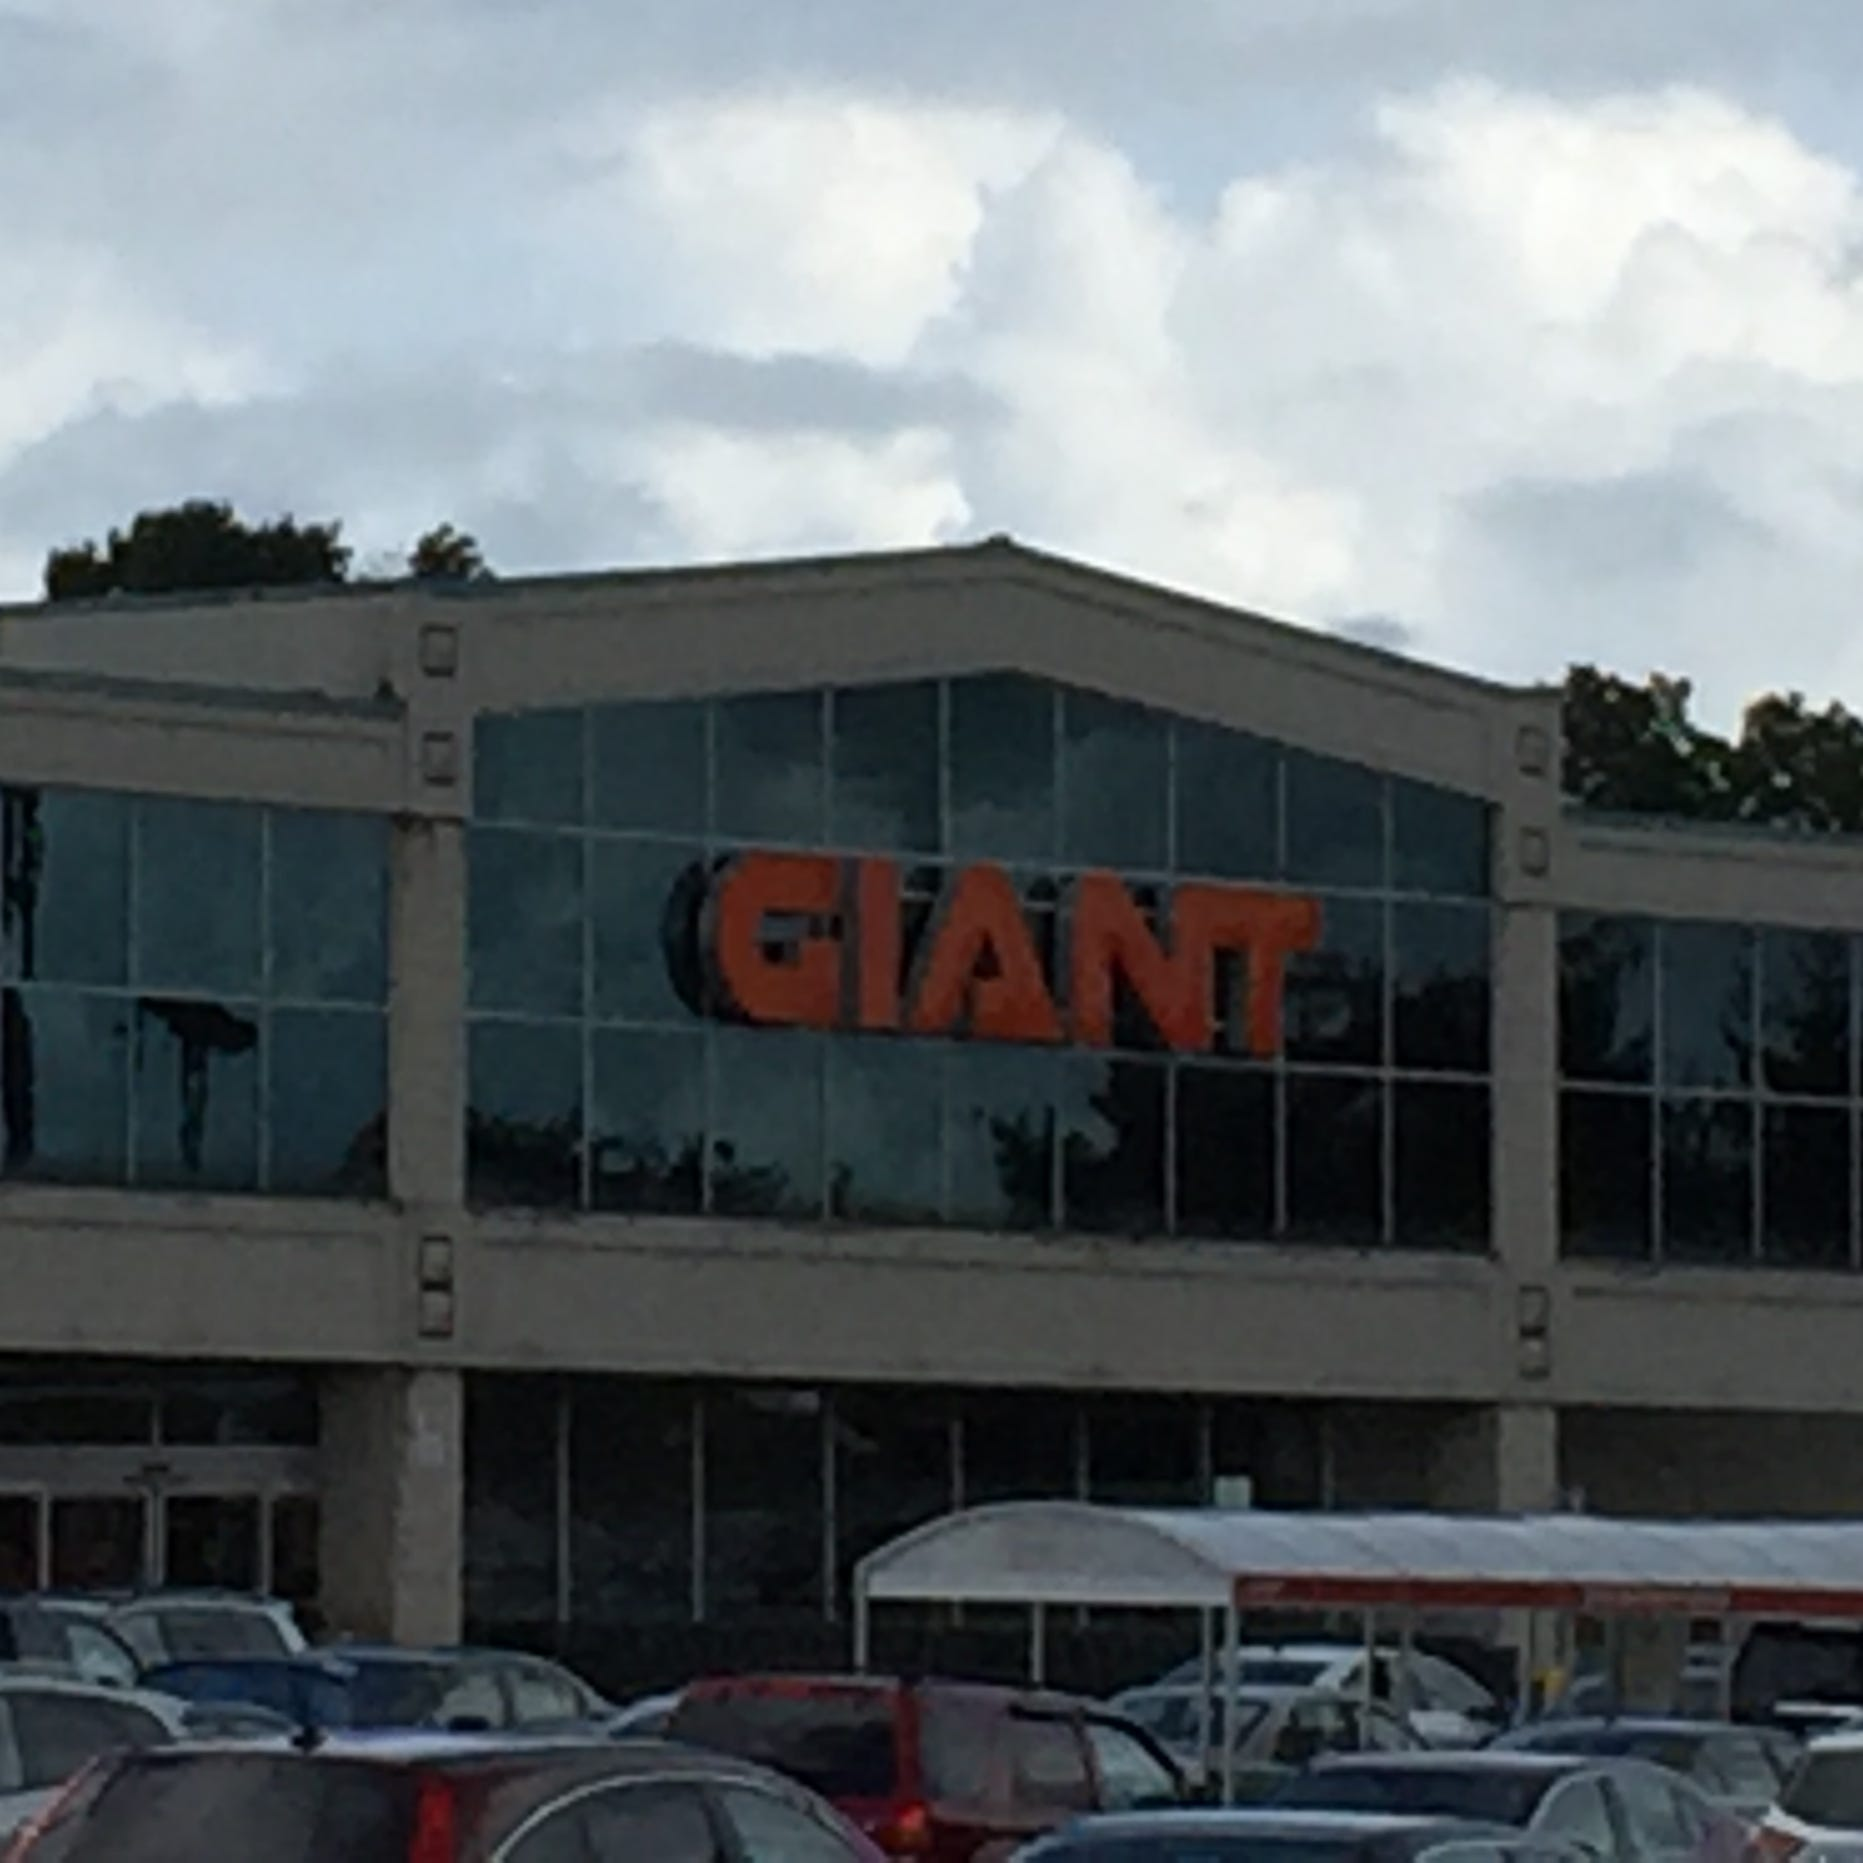 Giant Food Stores wins Lebanon liquor license